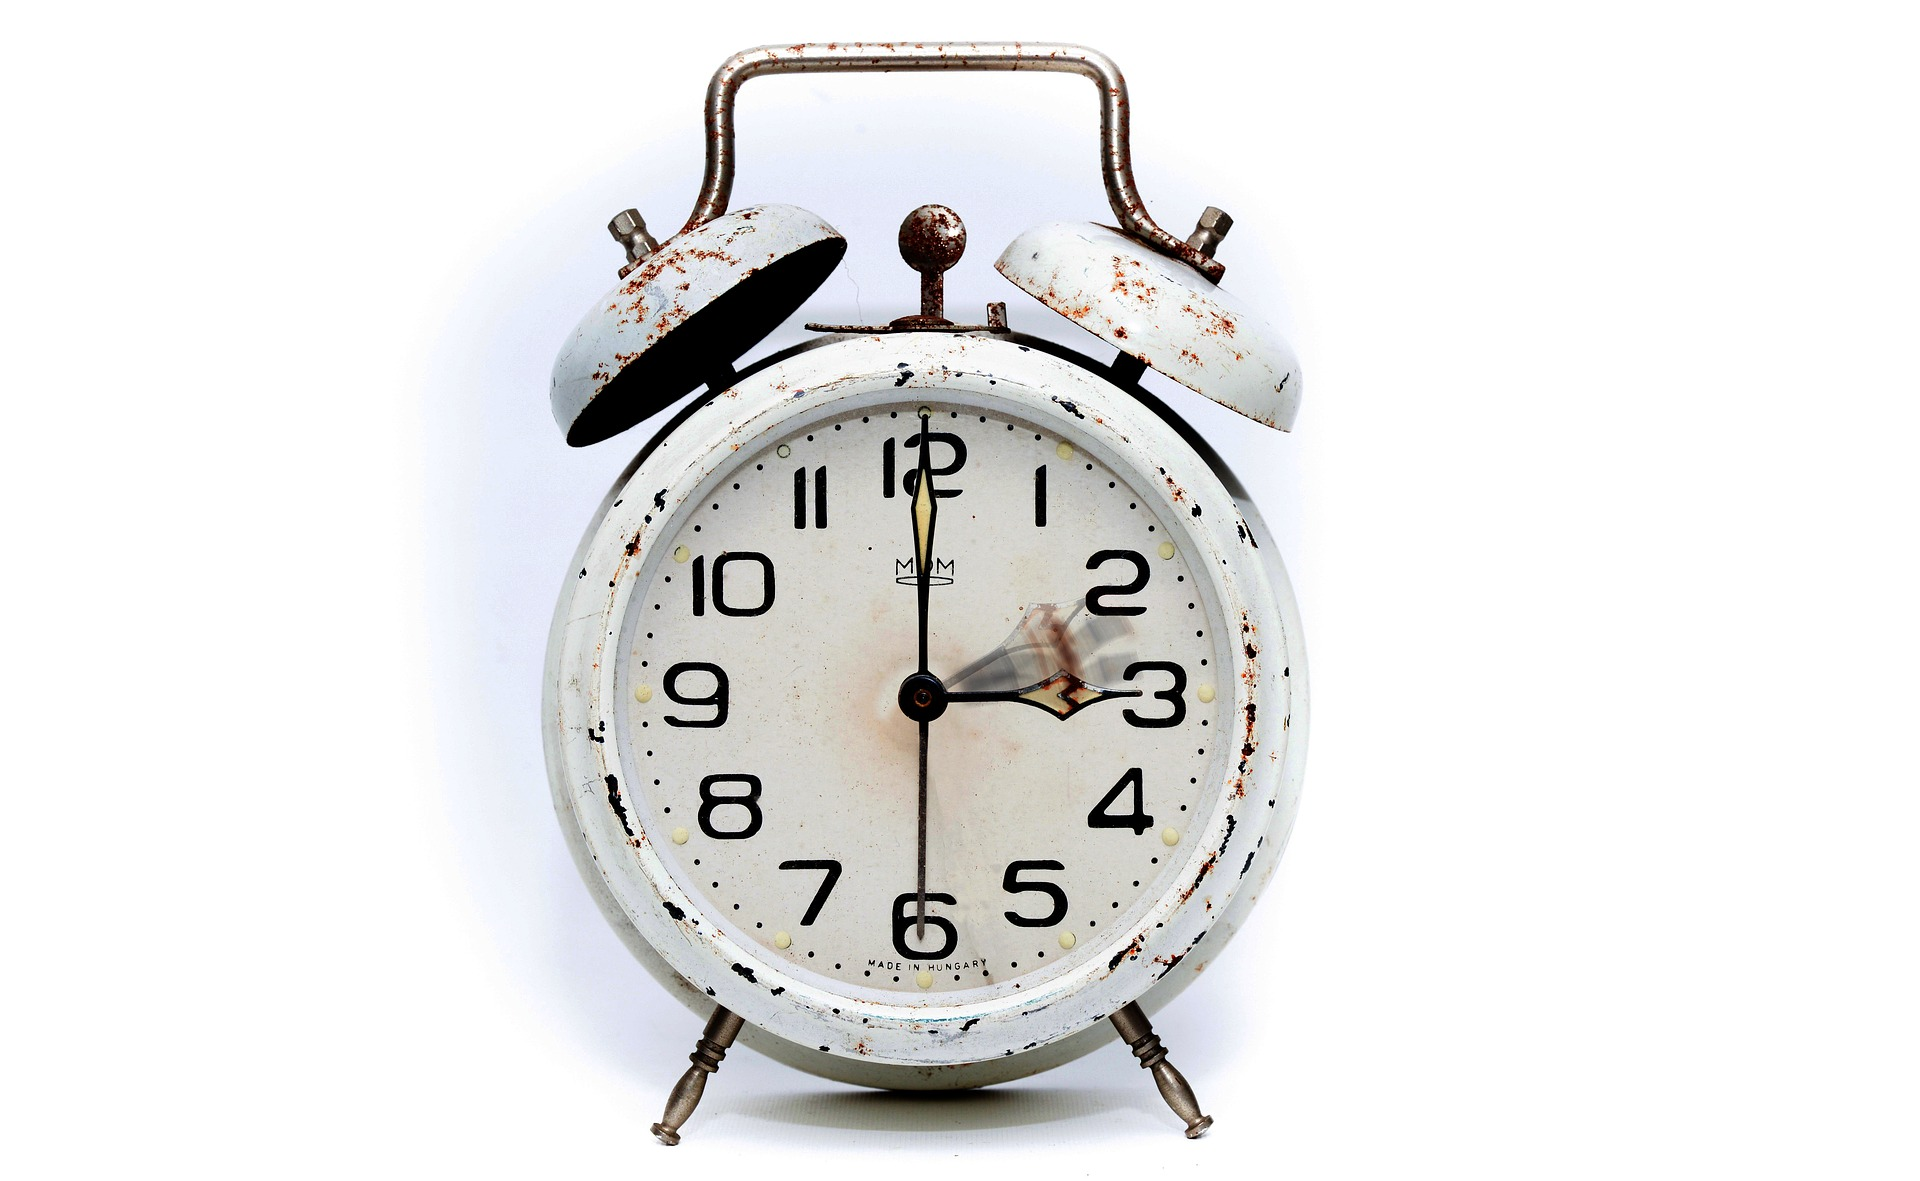 The clock is ticking. - Harness the power of relevant, informative content that customers value.